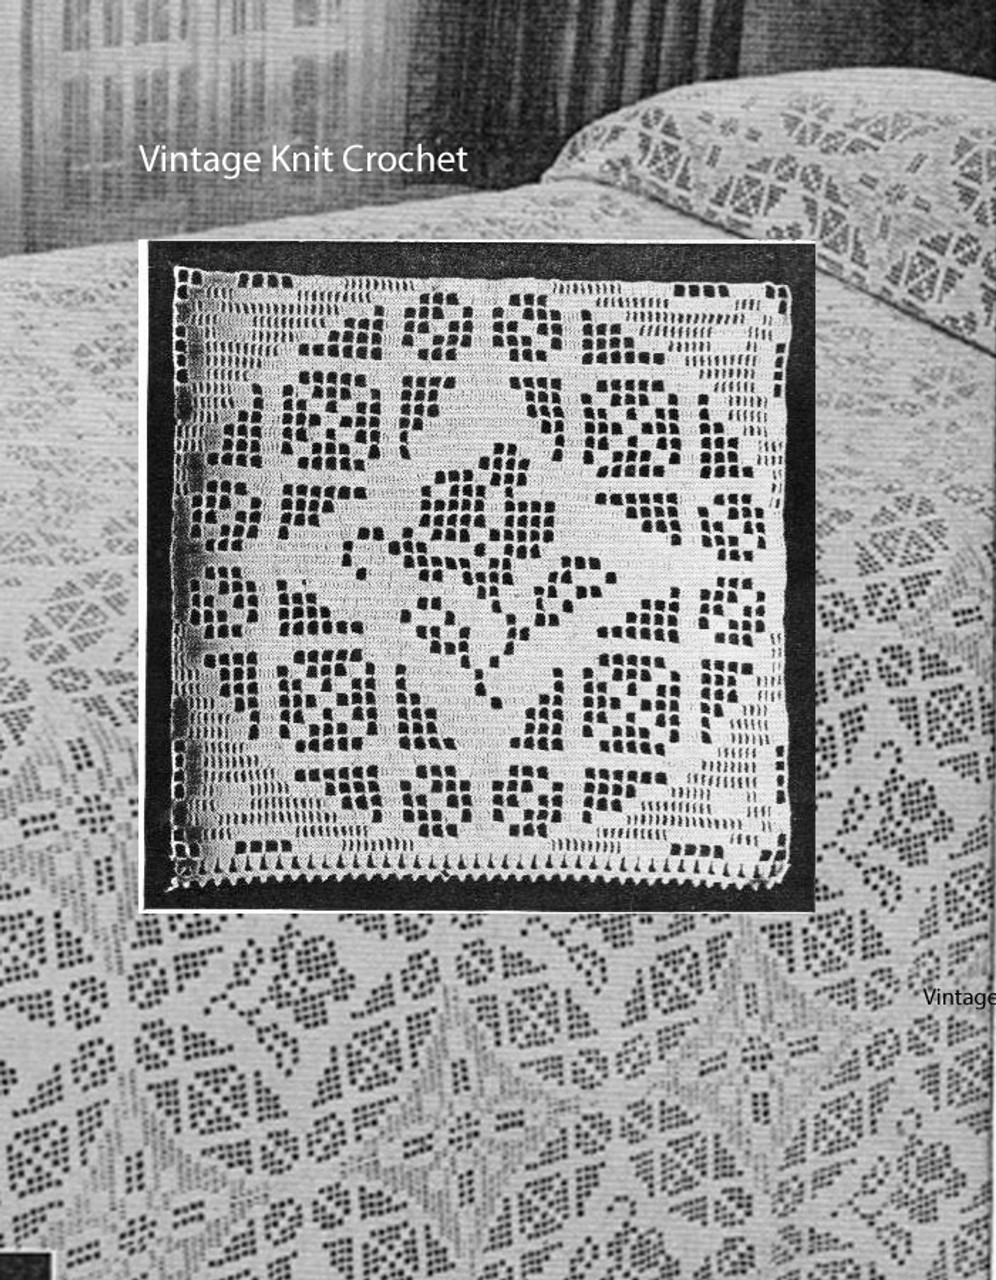 Filet Crochet Bedspread Pattern, Rose Window